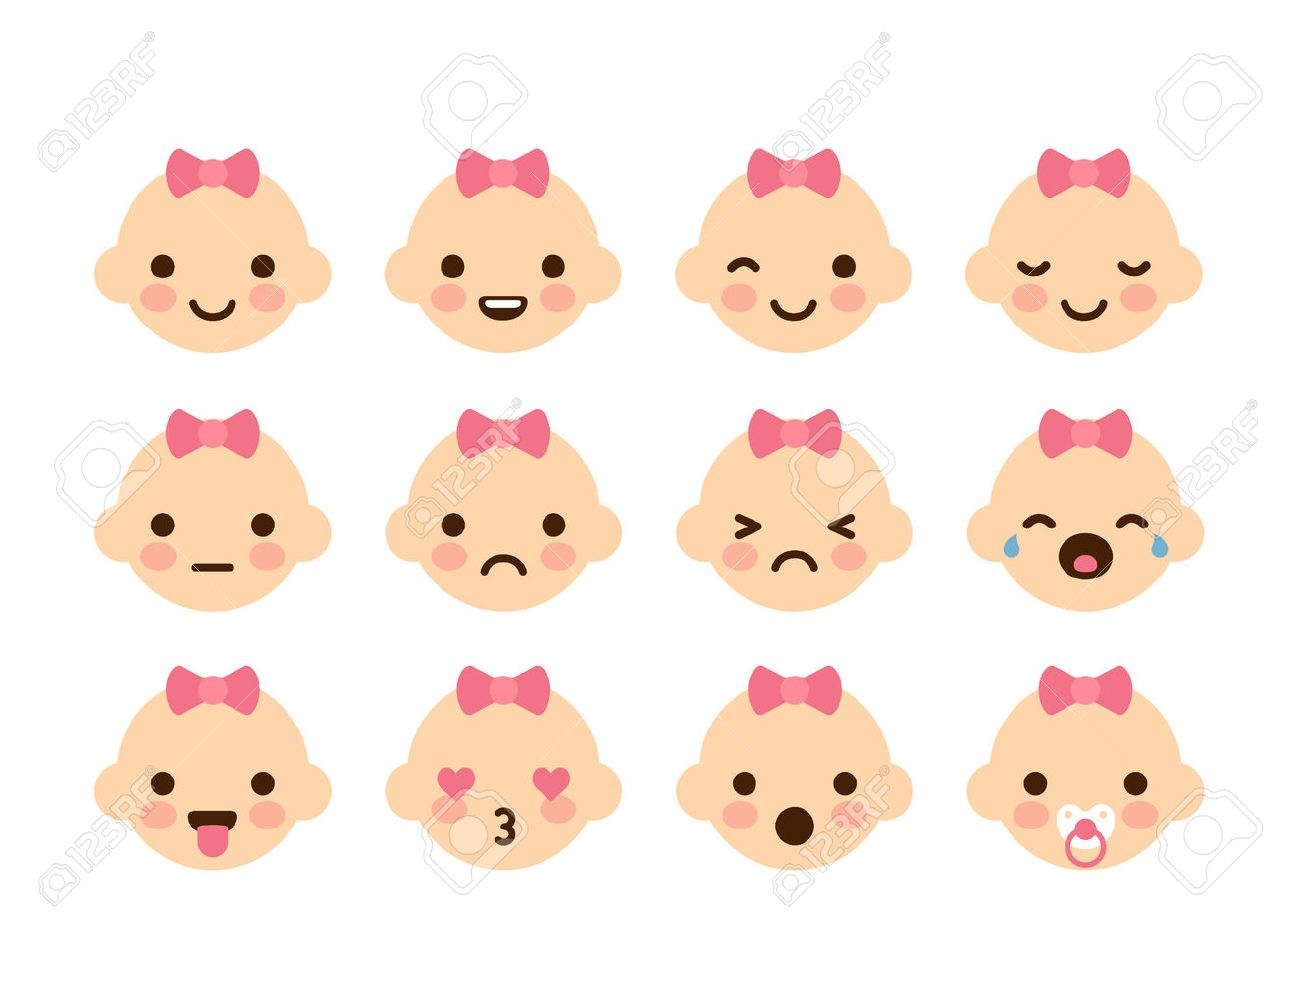 Set of 12 cute baby emoticons very simple but expressive cartoon baby girl faces with